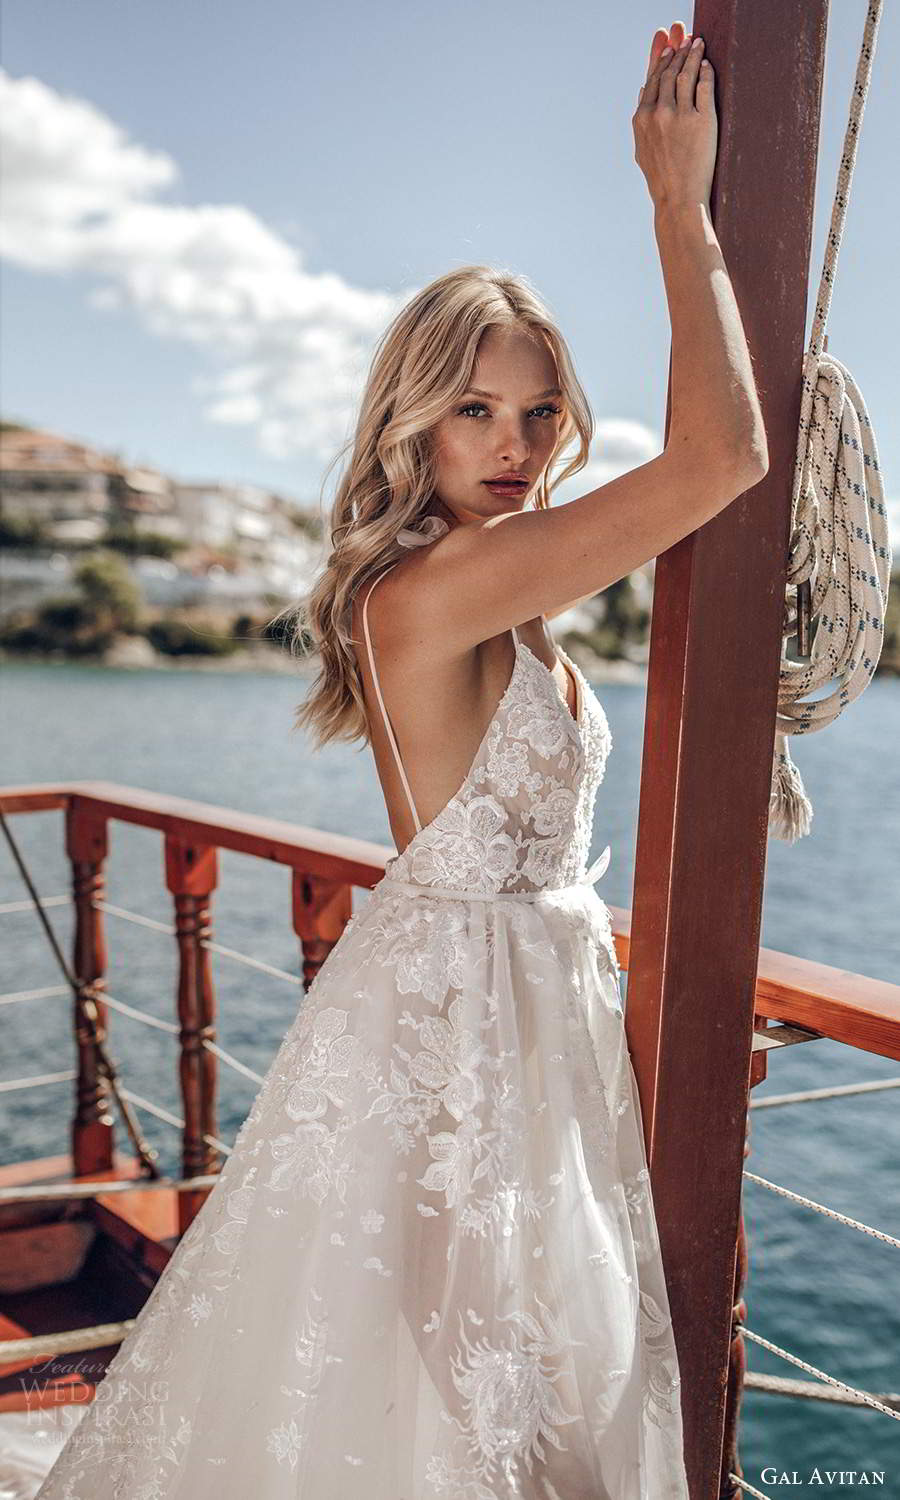 gal avitan 2021 bridal sleeveless straps sweetheart neckline fully embellished lace a line ball gown wedding dress (10) sv